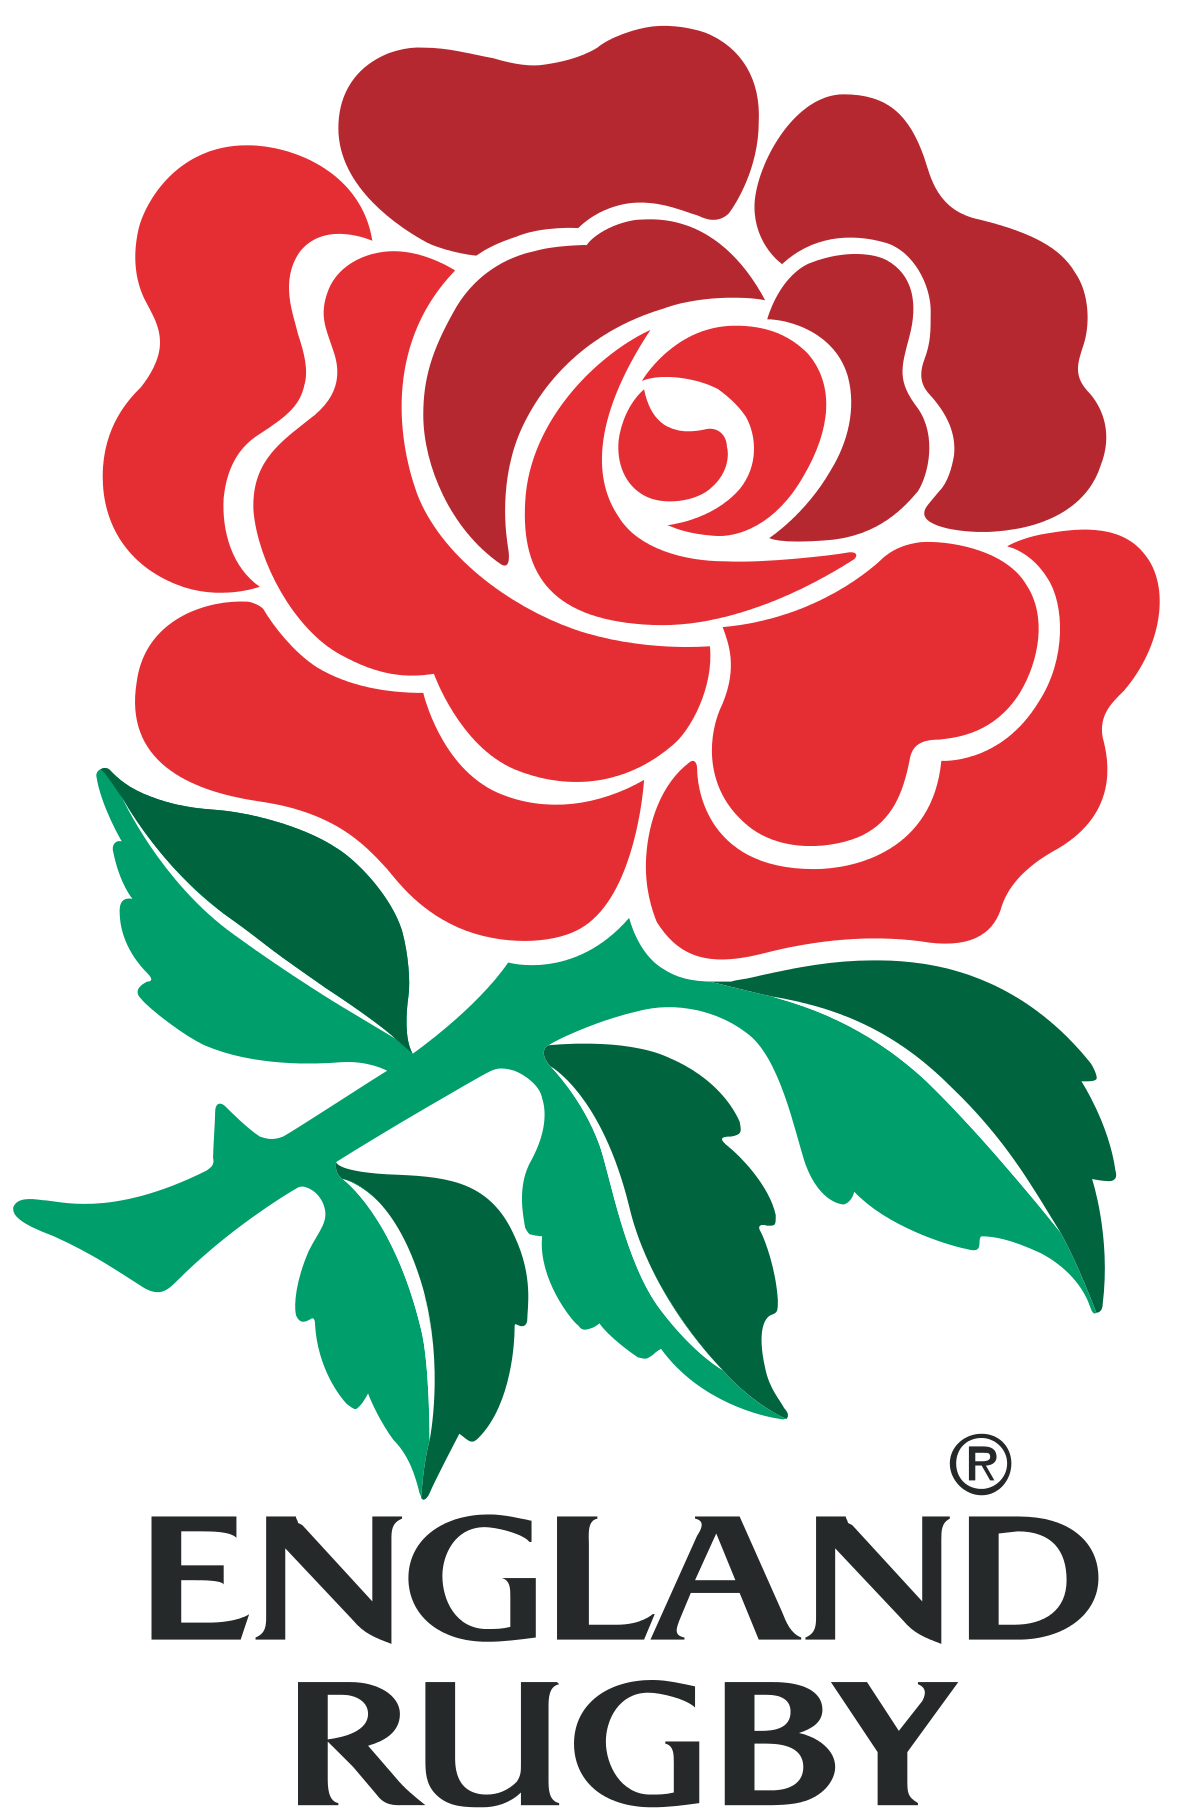 England Rugby Emblem Rose And Shield Google Search Rugby Wallpaper England Rugby Union Rugby Logo